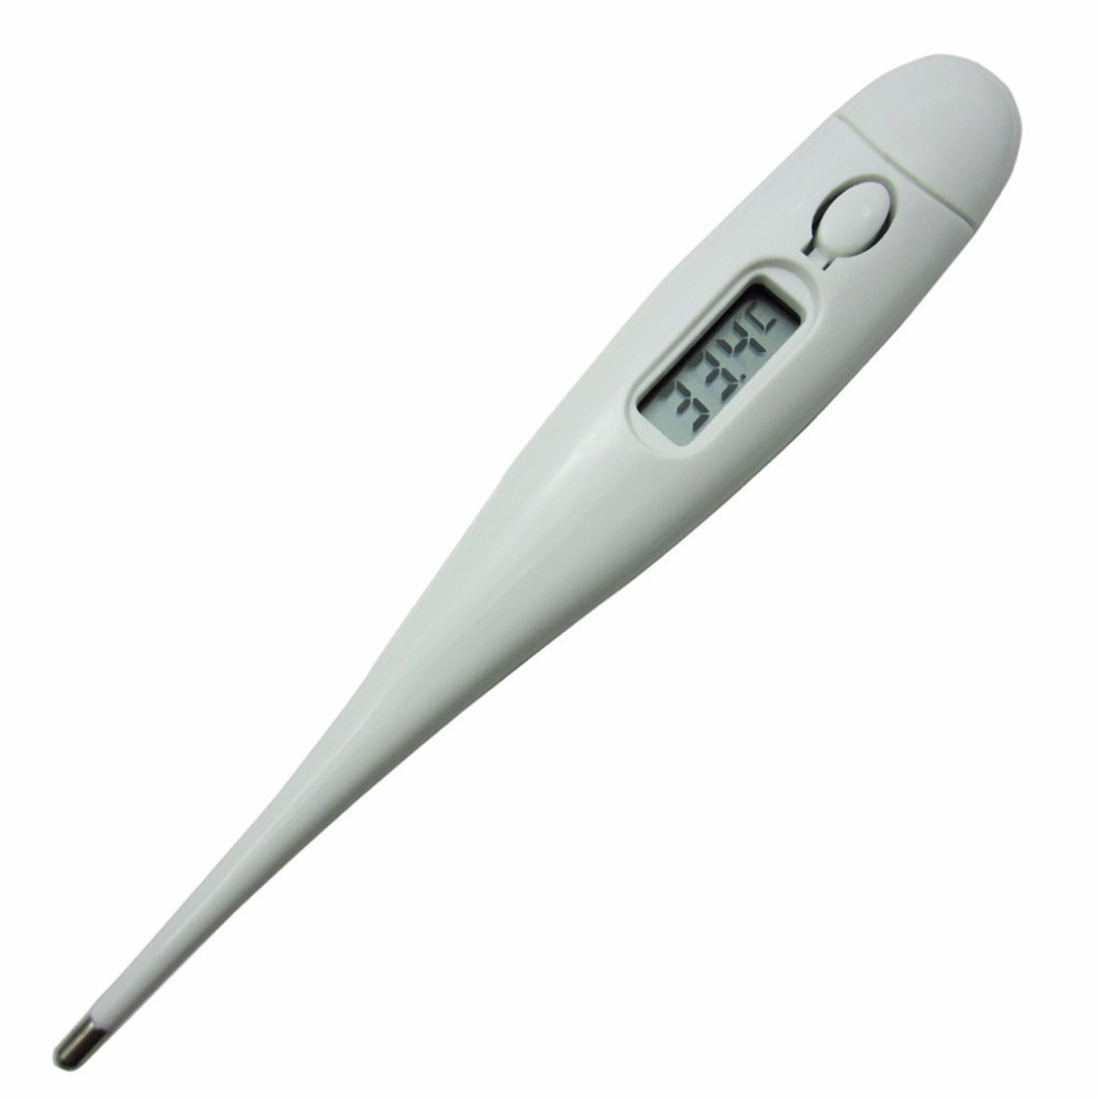 Body Child Digital Thermometer Waterproof Adult LCD Thermometer Baby Temperature Digital Measurement